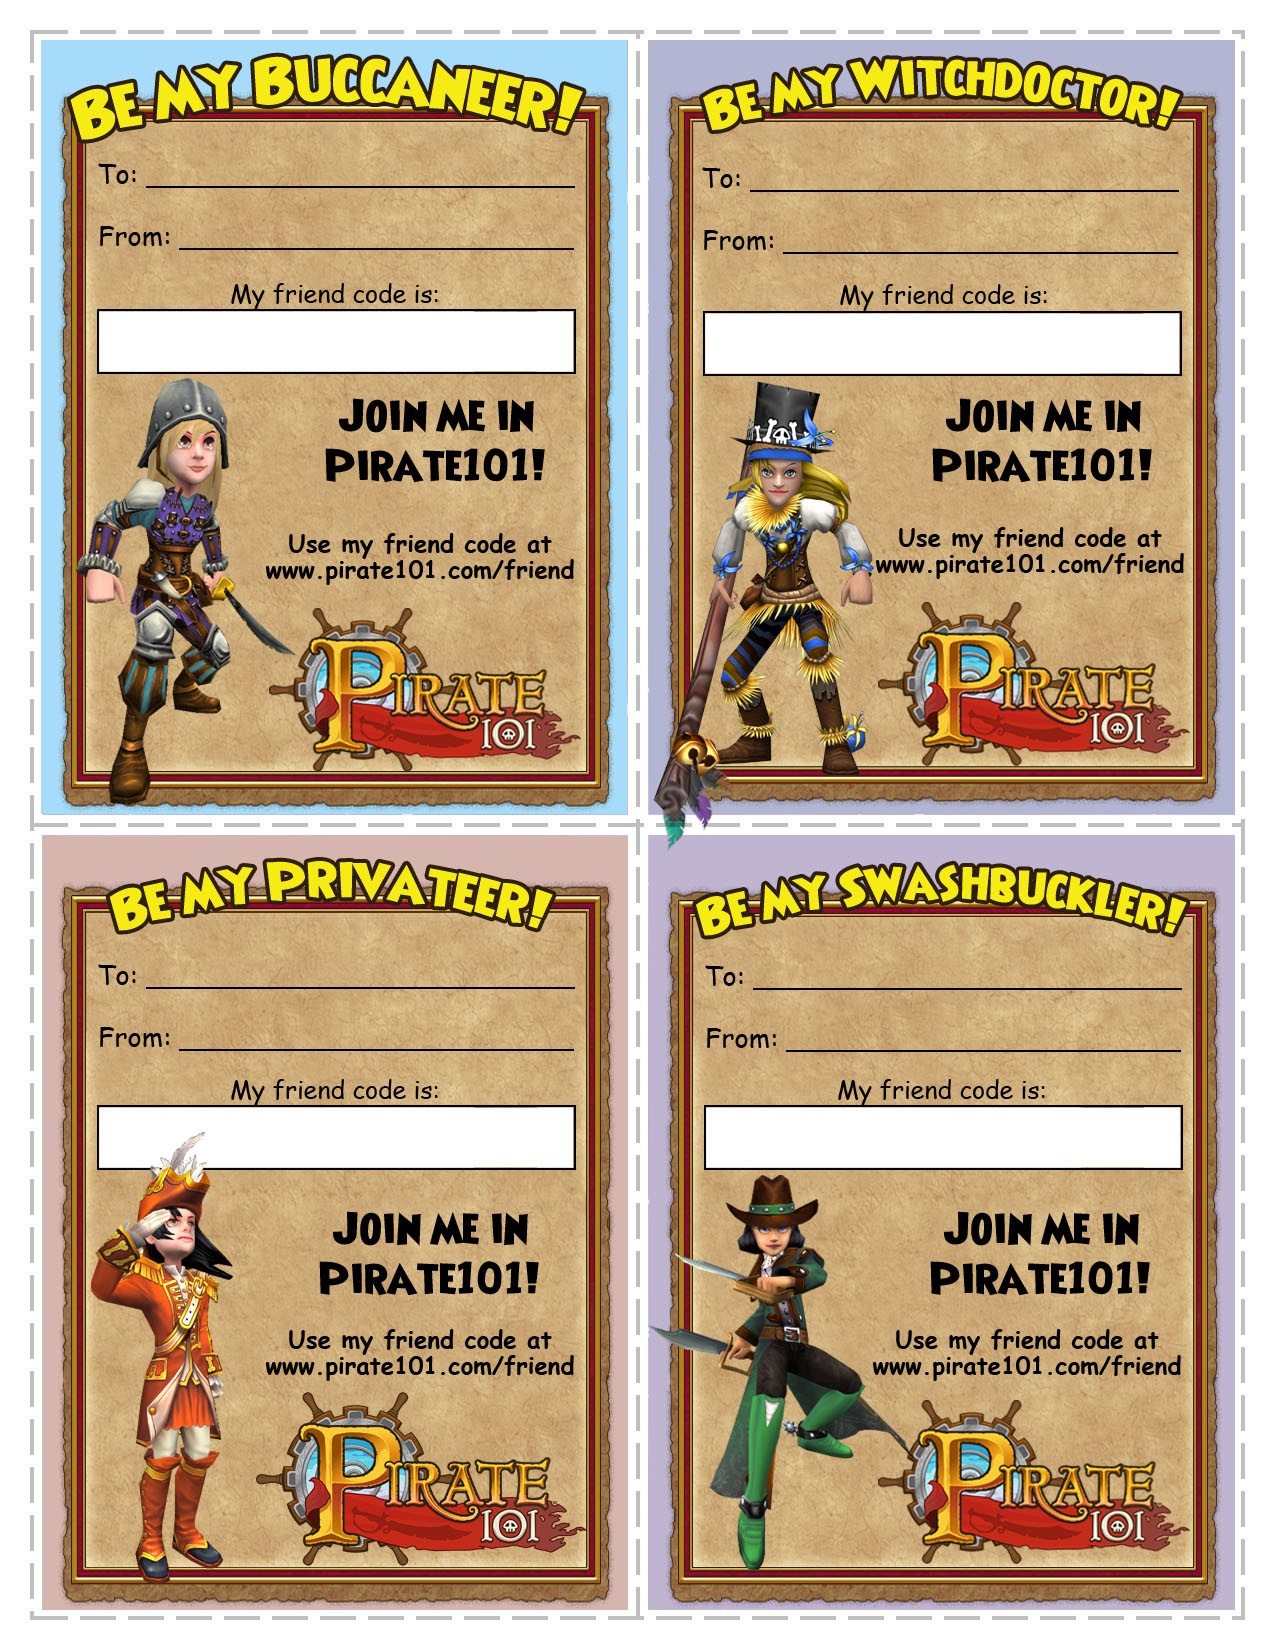 Pirate Printable Valentines | Pirate101 Free Online Game